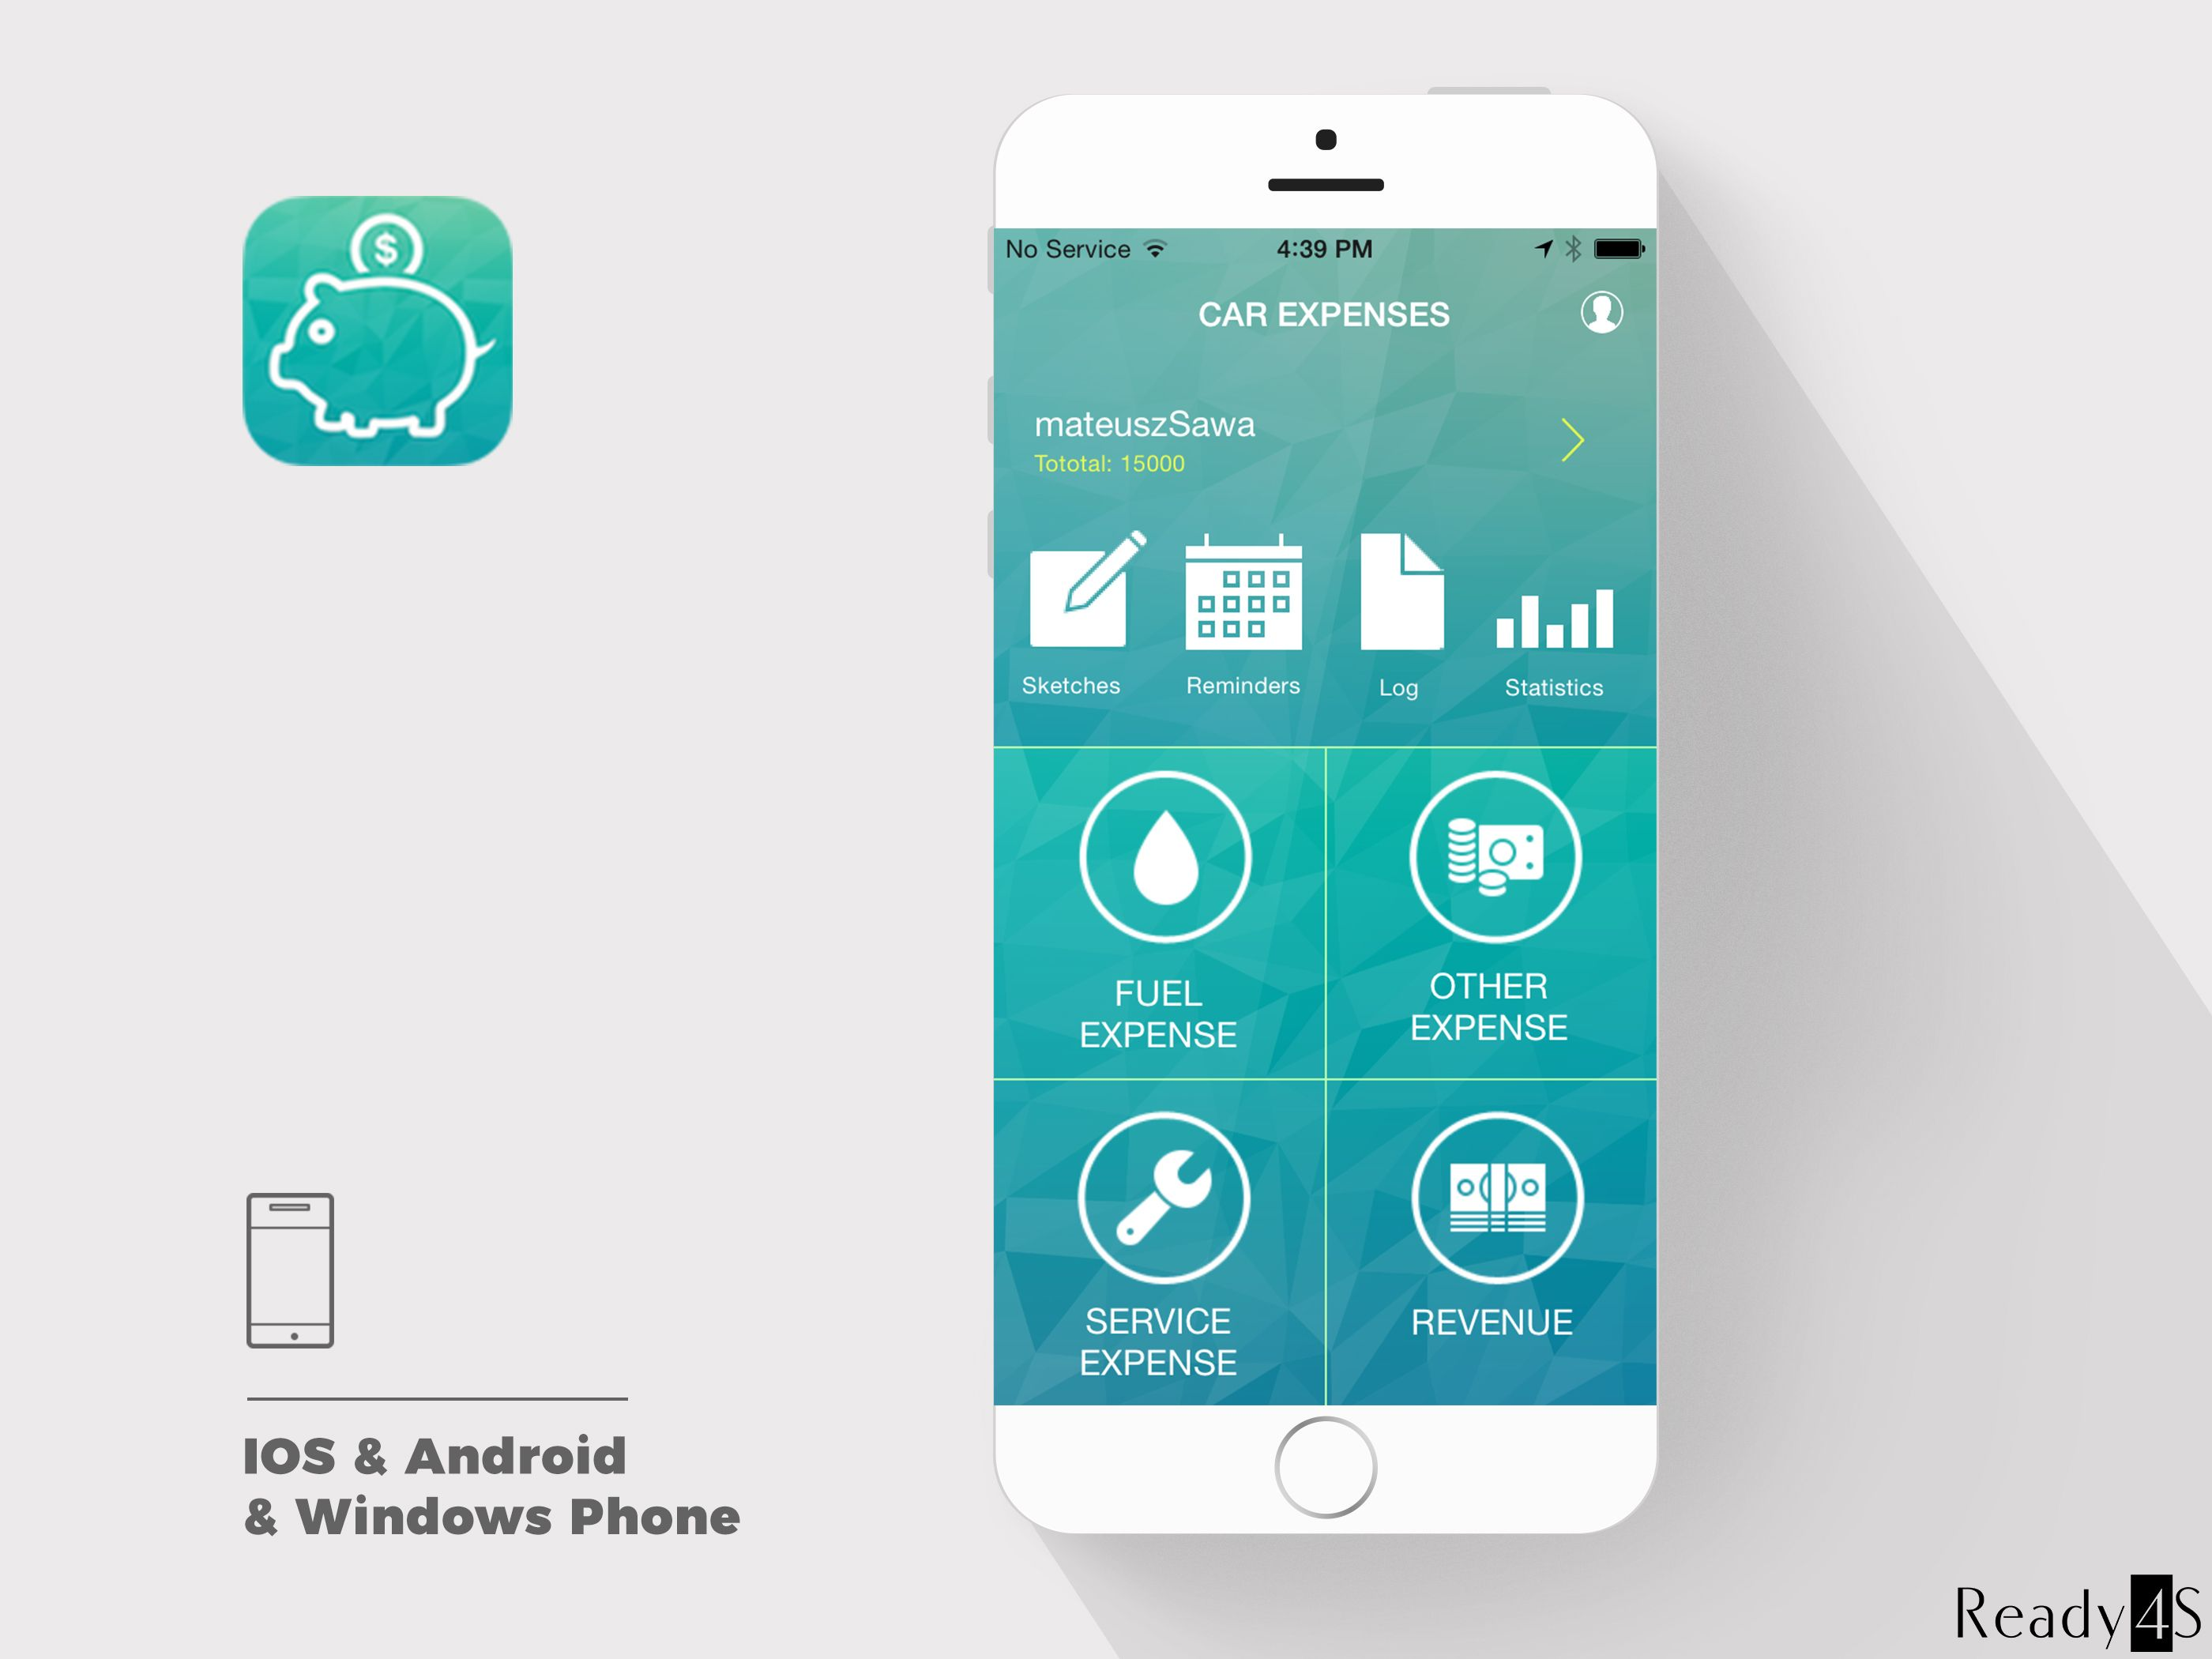 Car Expenses app helps to manage all the expenses